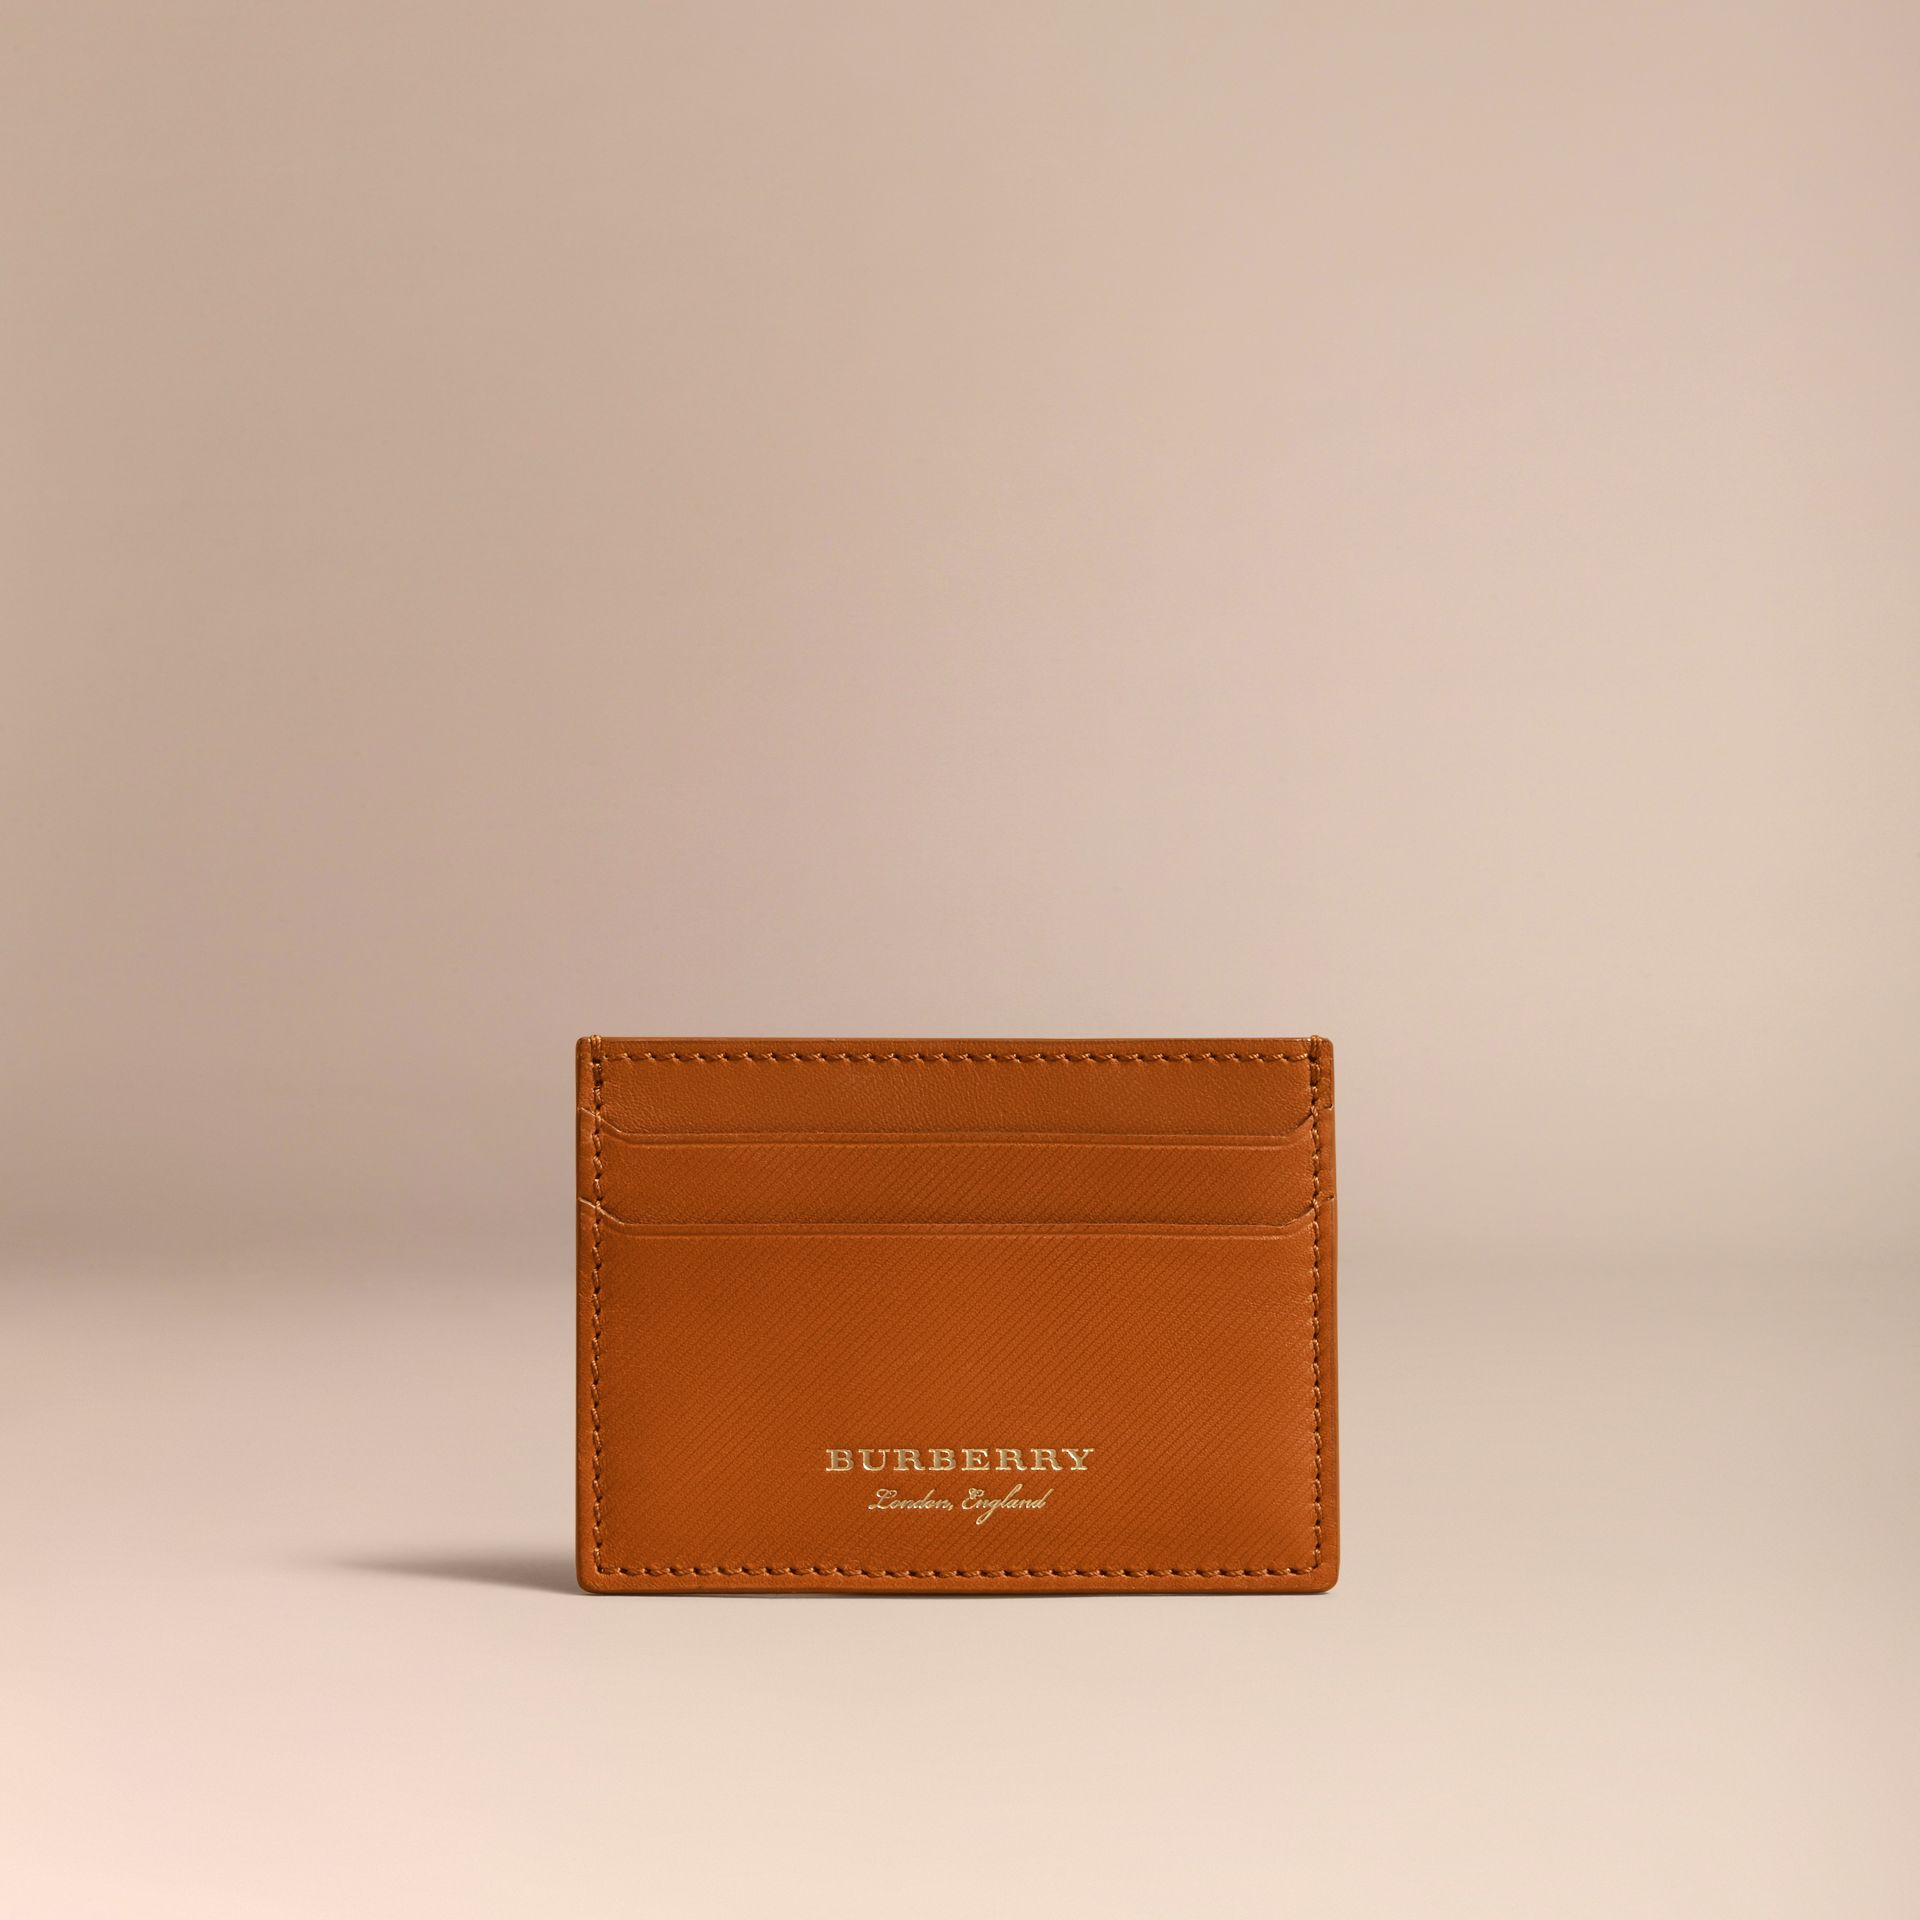 Trench Leather Card Case in Tan - Men | Burberry United Kingdom - gallery image 6